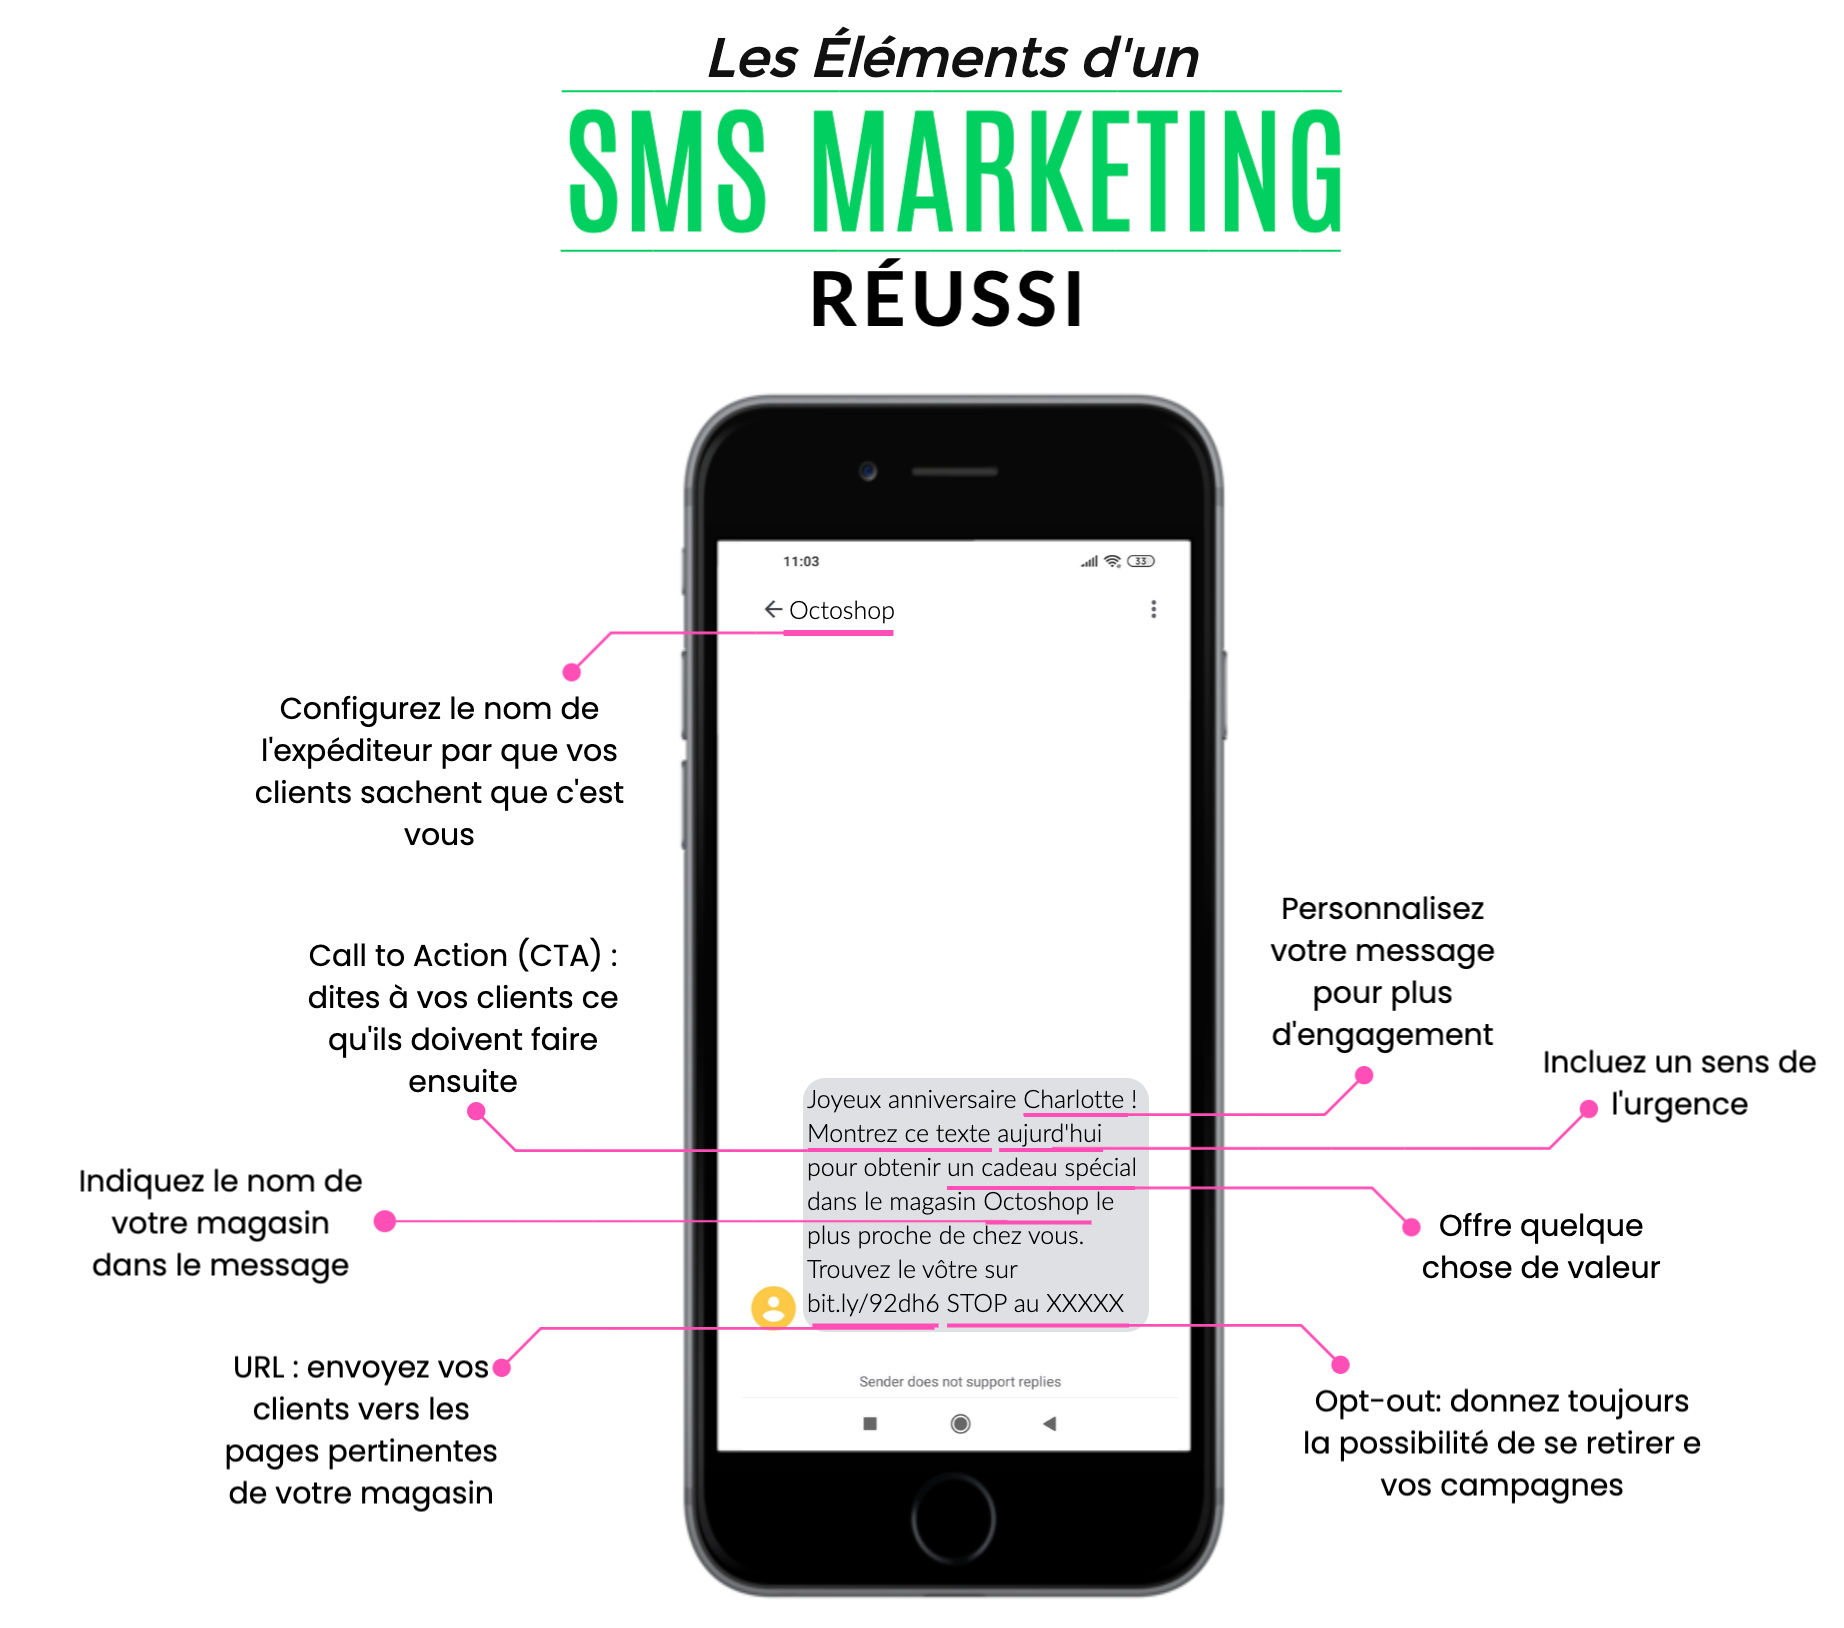 elements sms marketing reussi